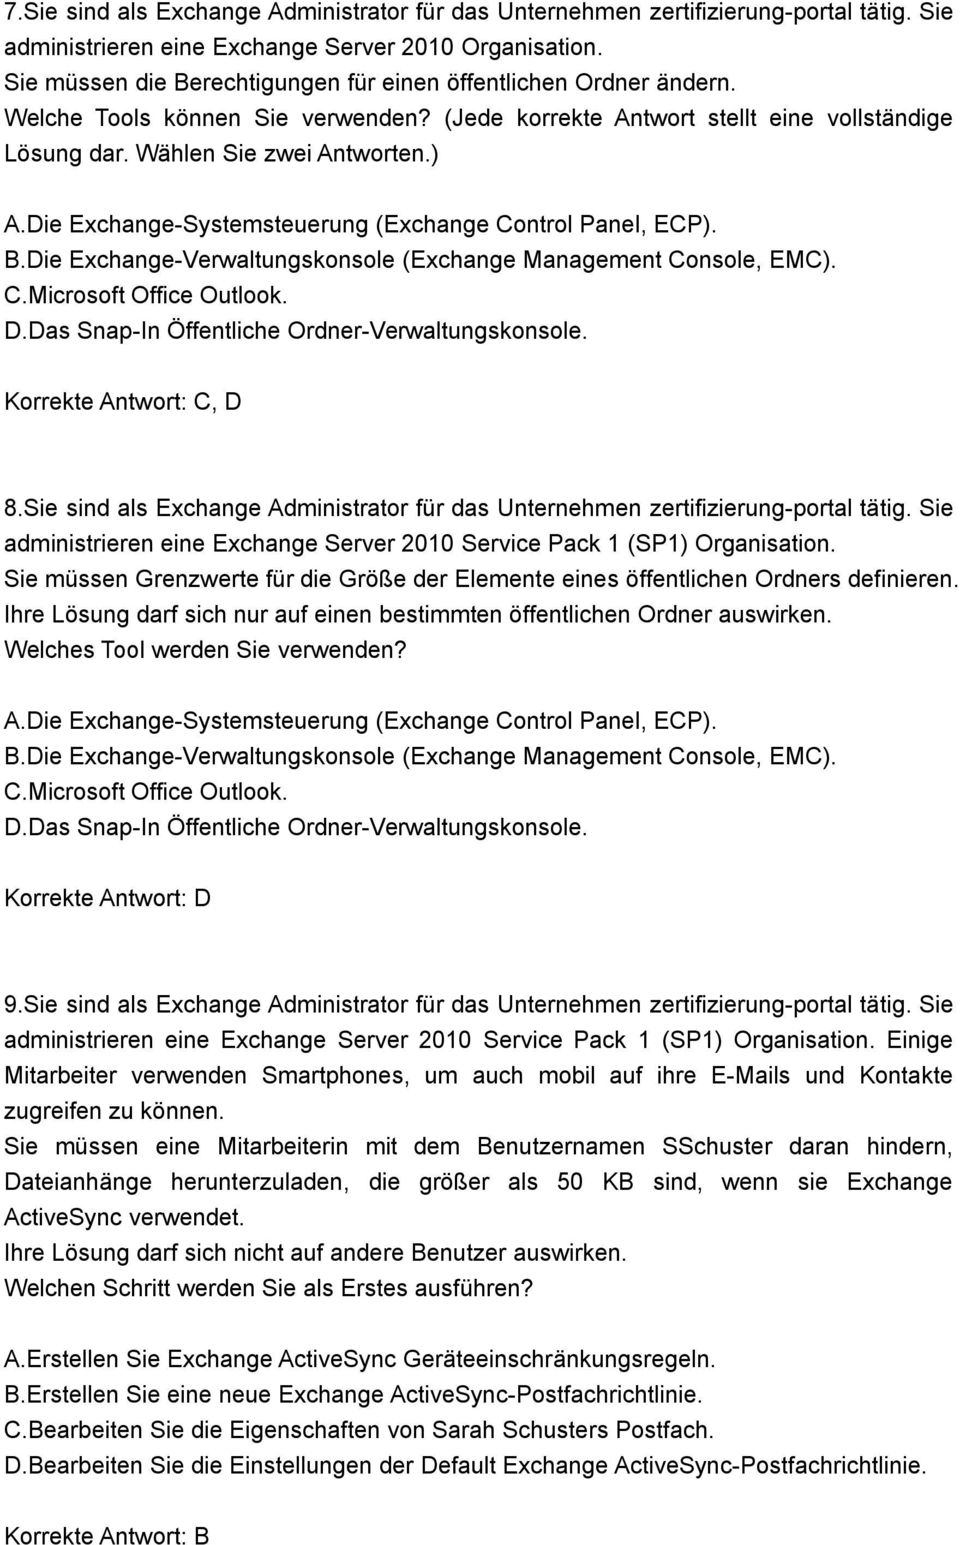 Die Exchange-Systemsteuerung (Exchange Control Panel, ECP). B.Die Exchange-Verwaltungskonsole (Exchange Management Console, EMC). C.Microsoft Office Outlook. D.